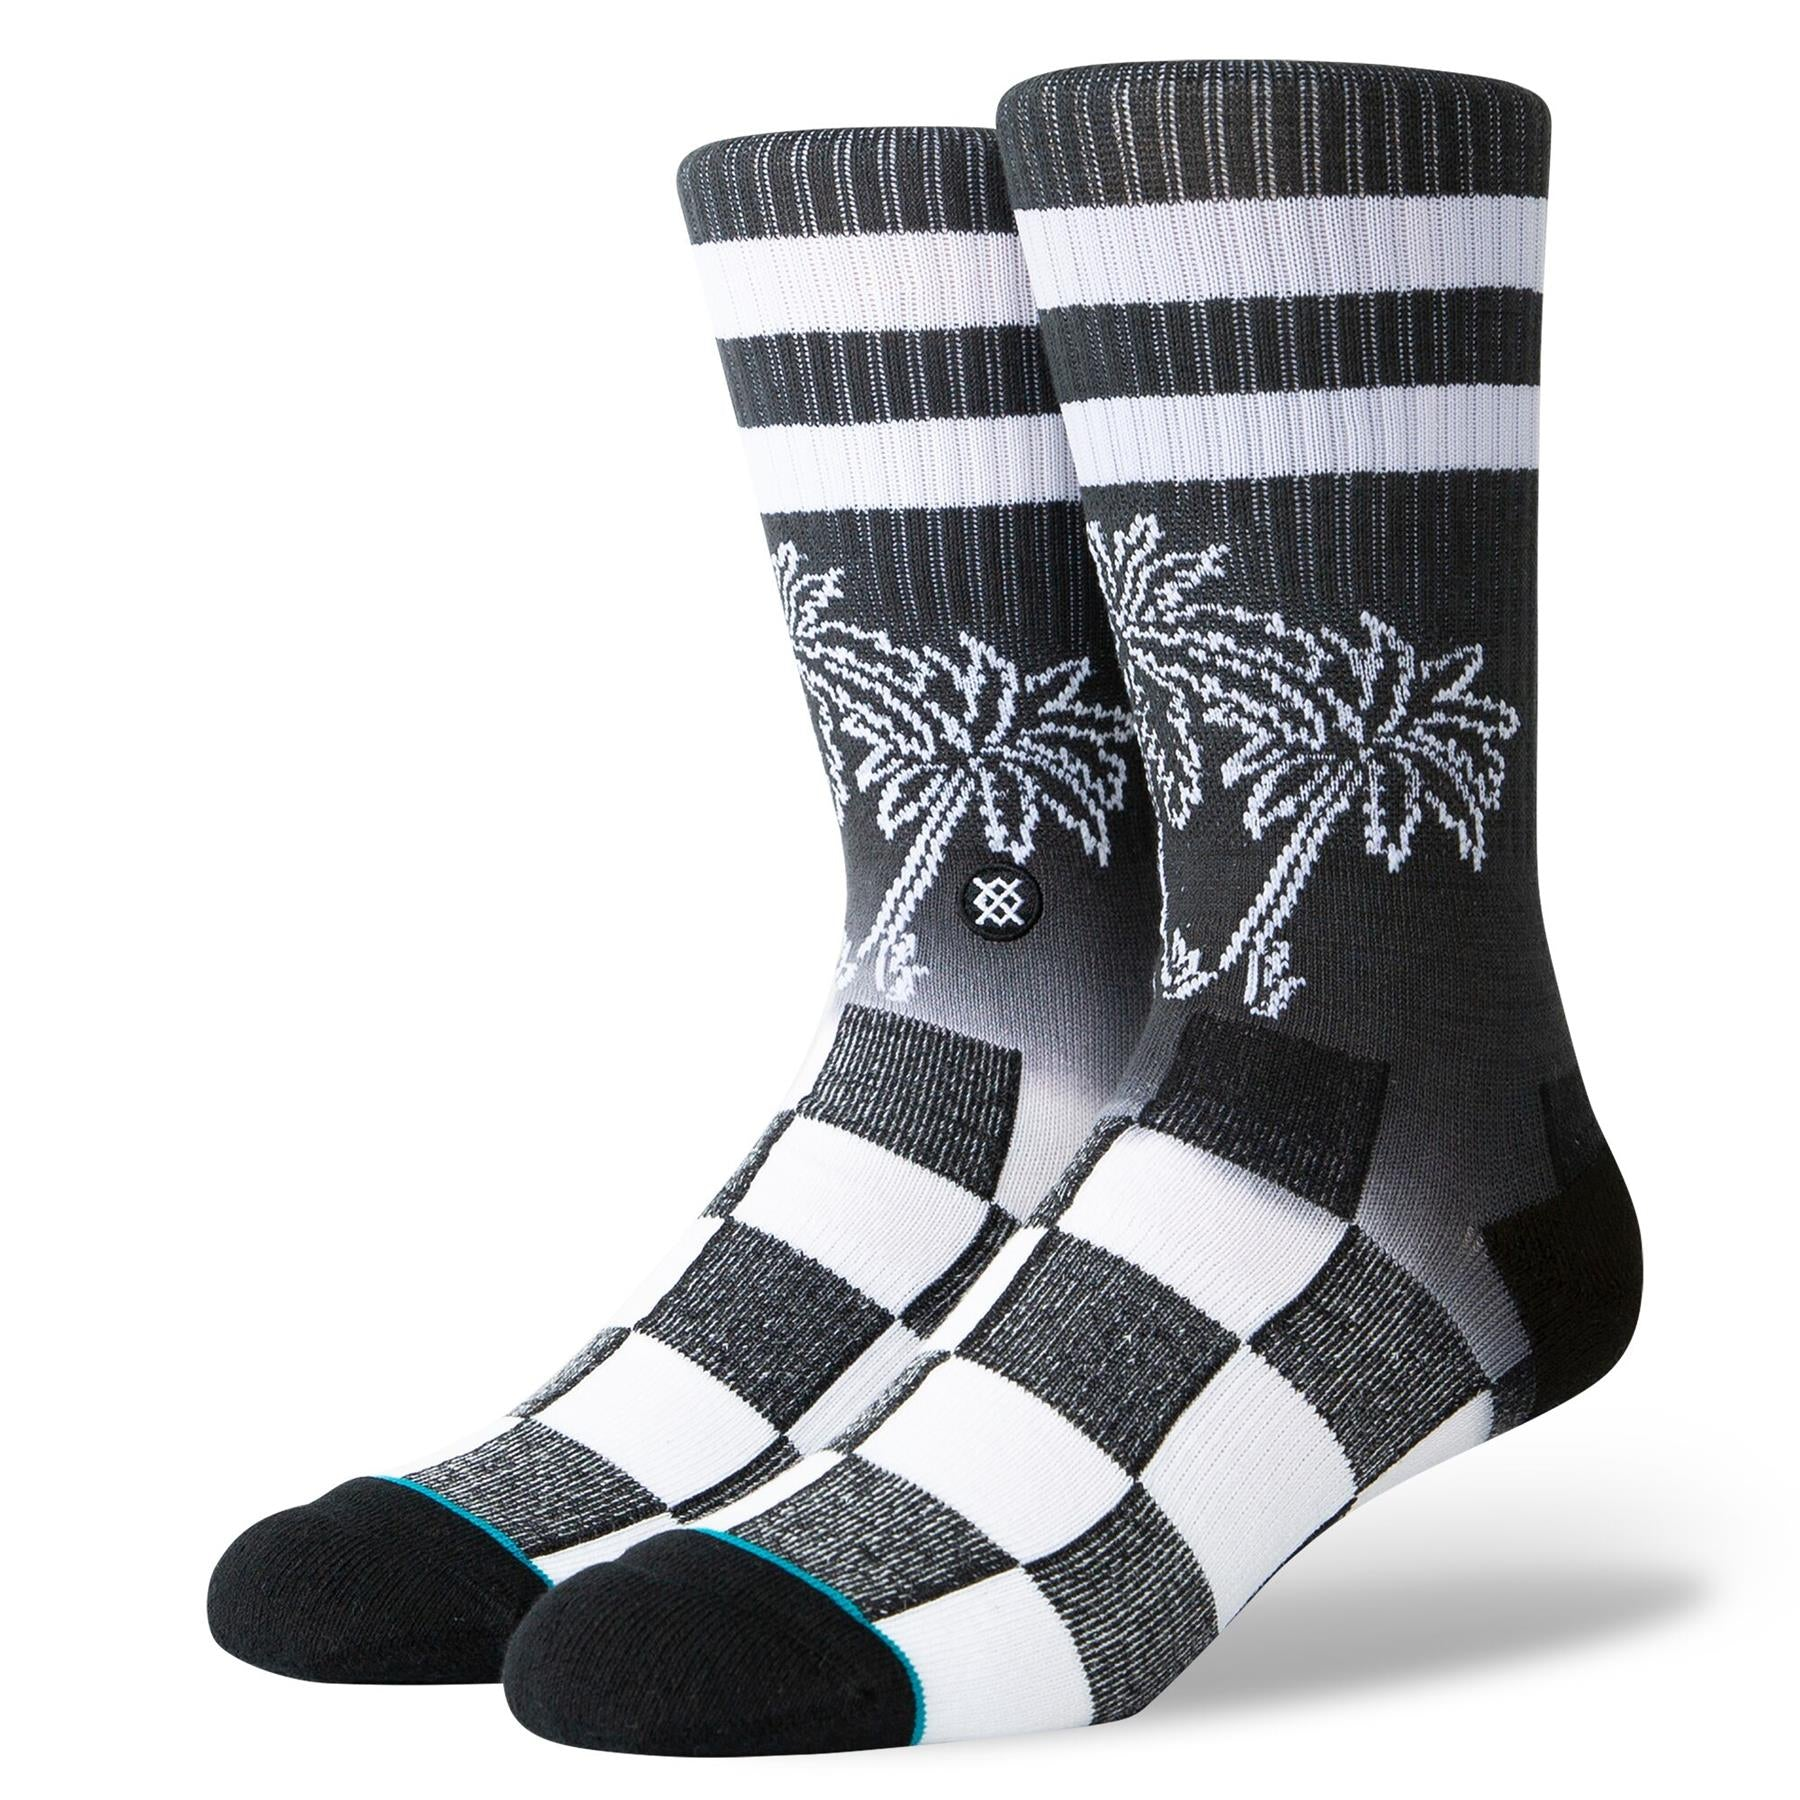 Stance Dipped Socks - Black/ Large